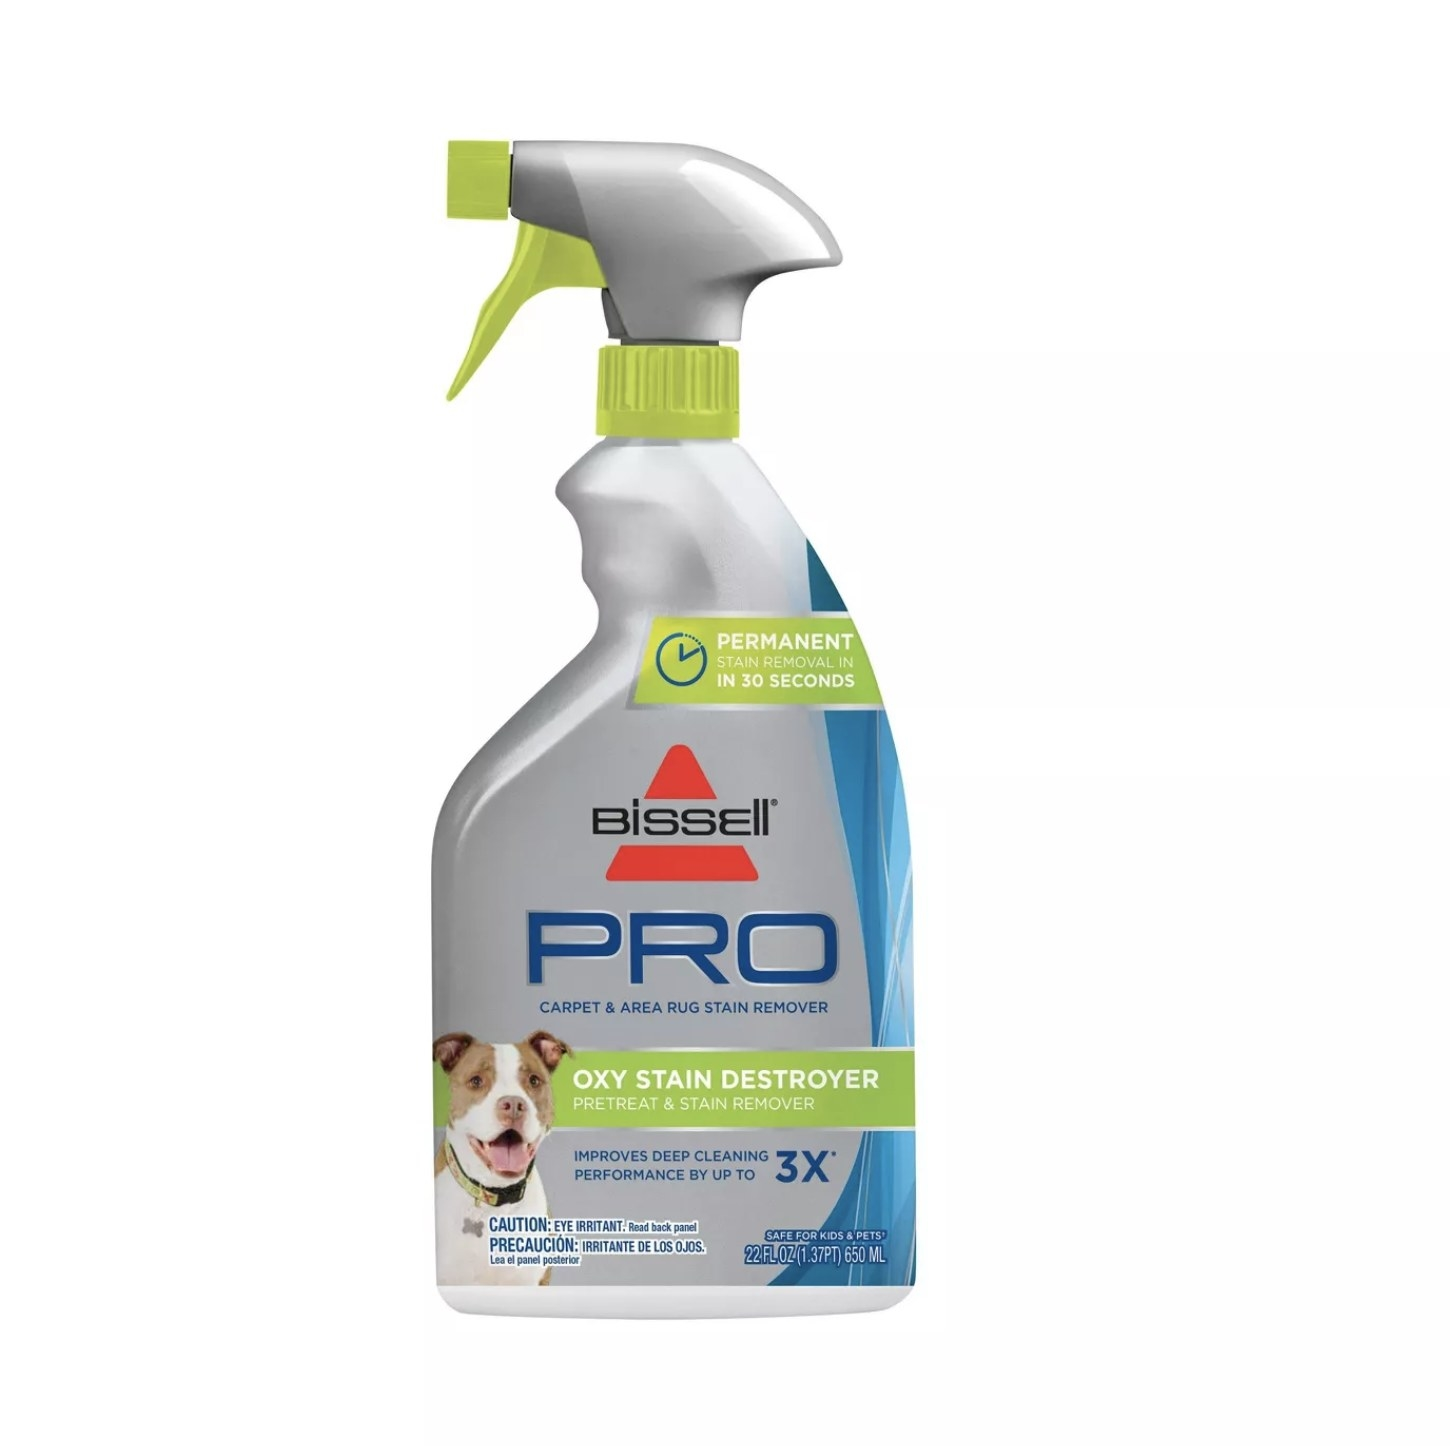 """Gray and blue spray bottle that says """"Bissell Pro Oxy Stain Destroyer"""""""